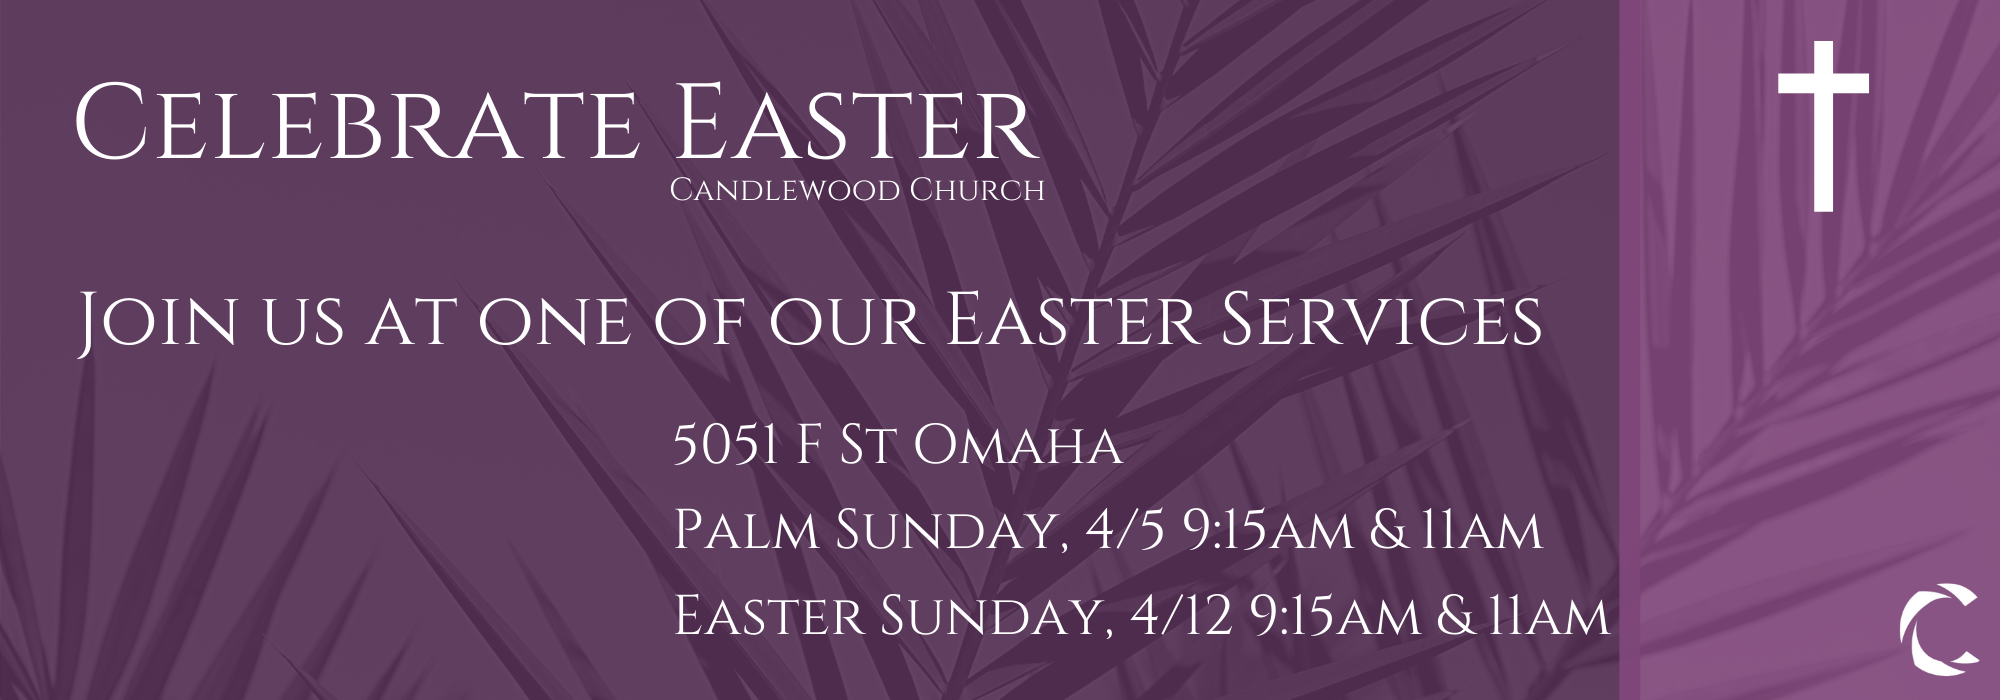 easter services in omaha at candlewood church